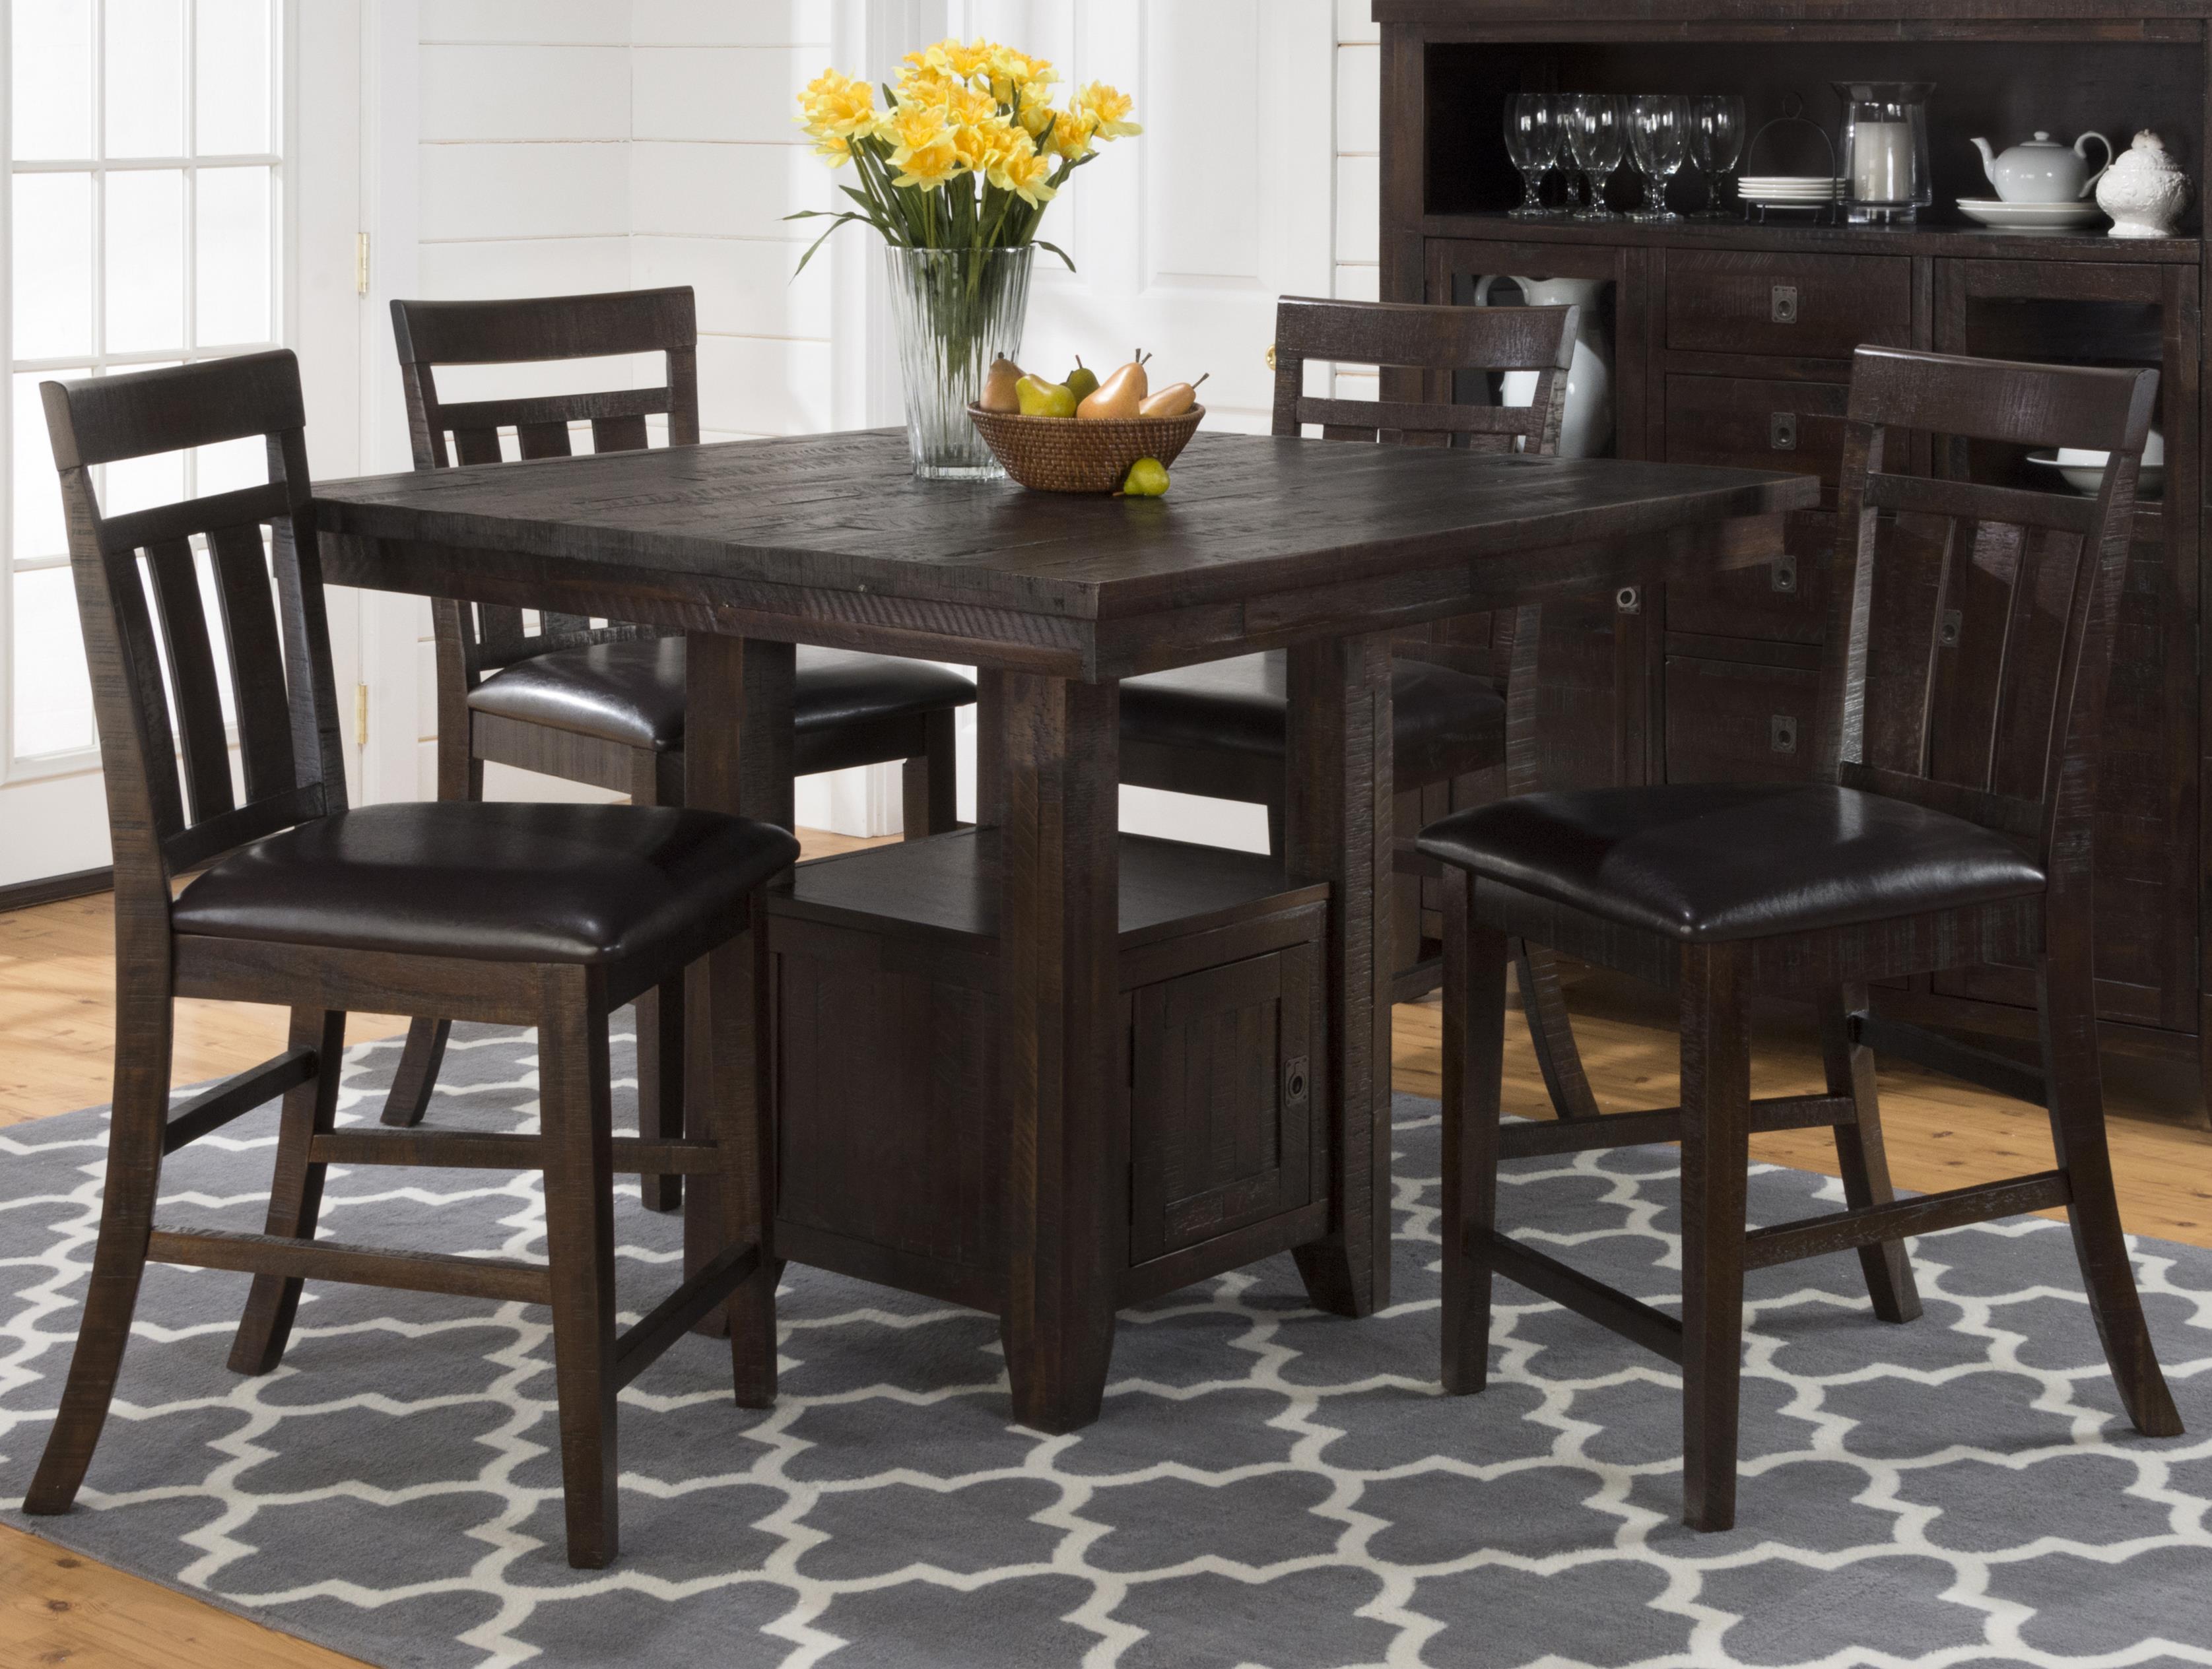 Kona Grove Counter Table w/ Storage Base and Chairs Set by Jofran at Stoney Creek Furniture